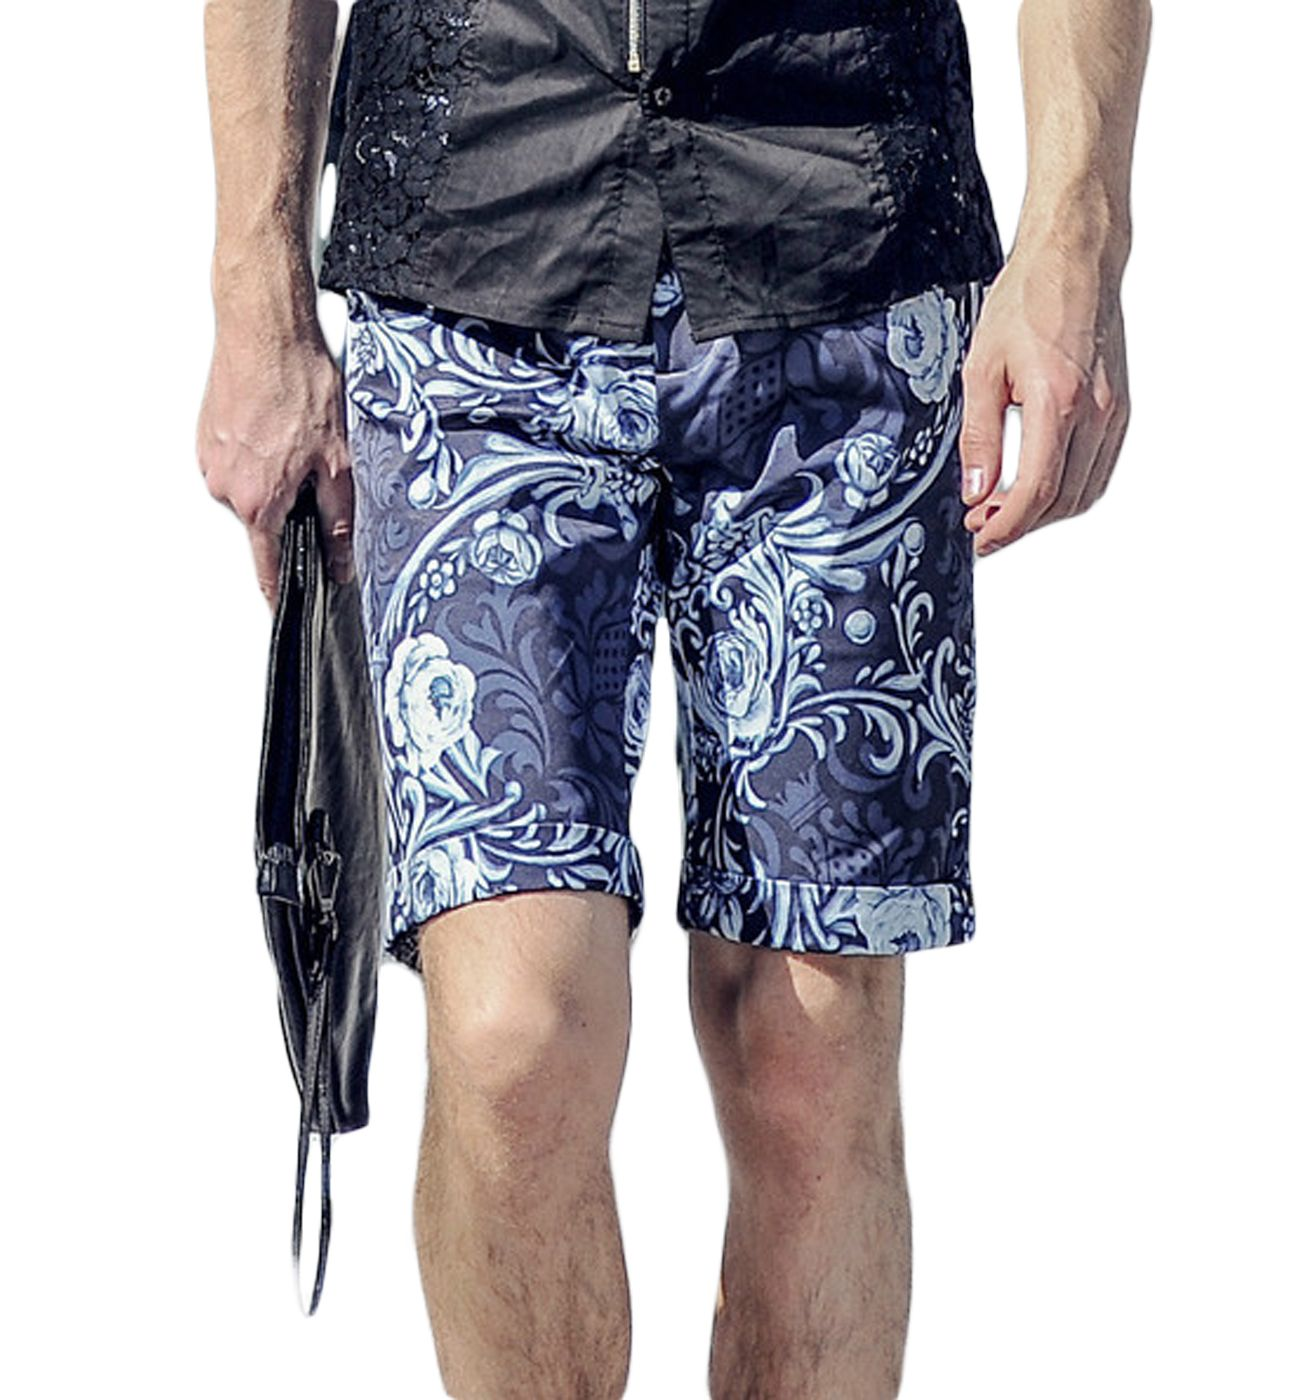 Mens Patterned Shorts Awesome Decoration